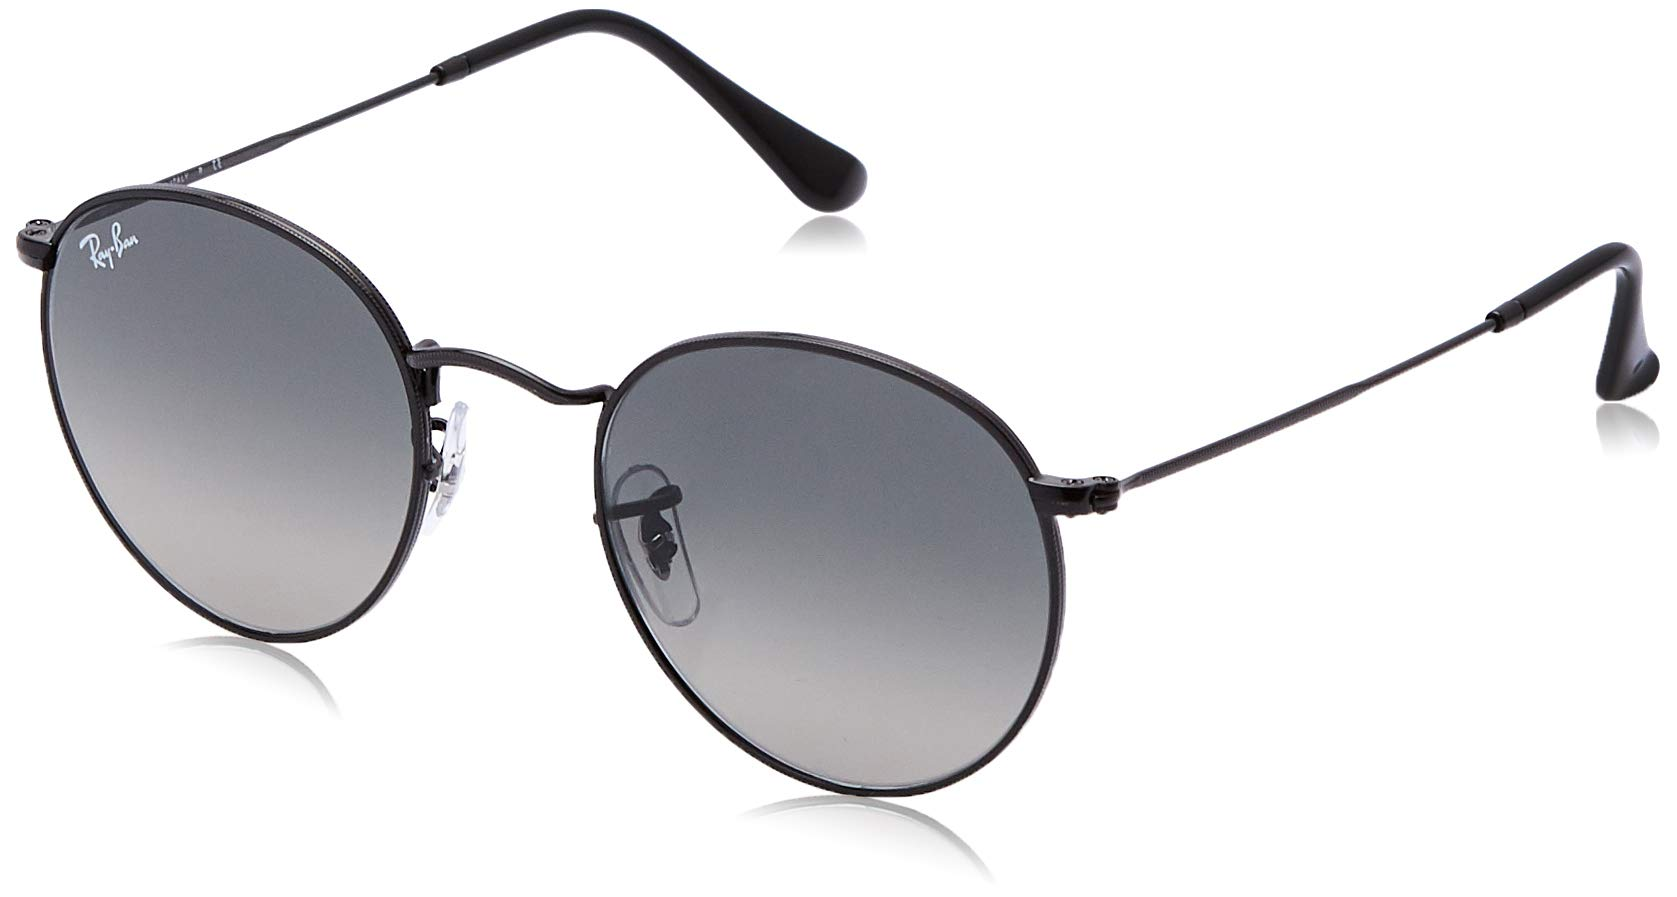 RAY-BAN RB3447N Round Flat Lenses Metal Sunglasses, Black/Grey Gradient, 50 mm by RAY-BAN